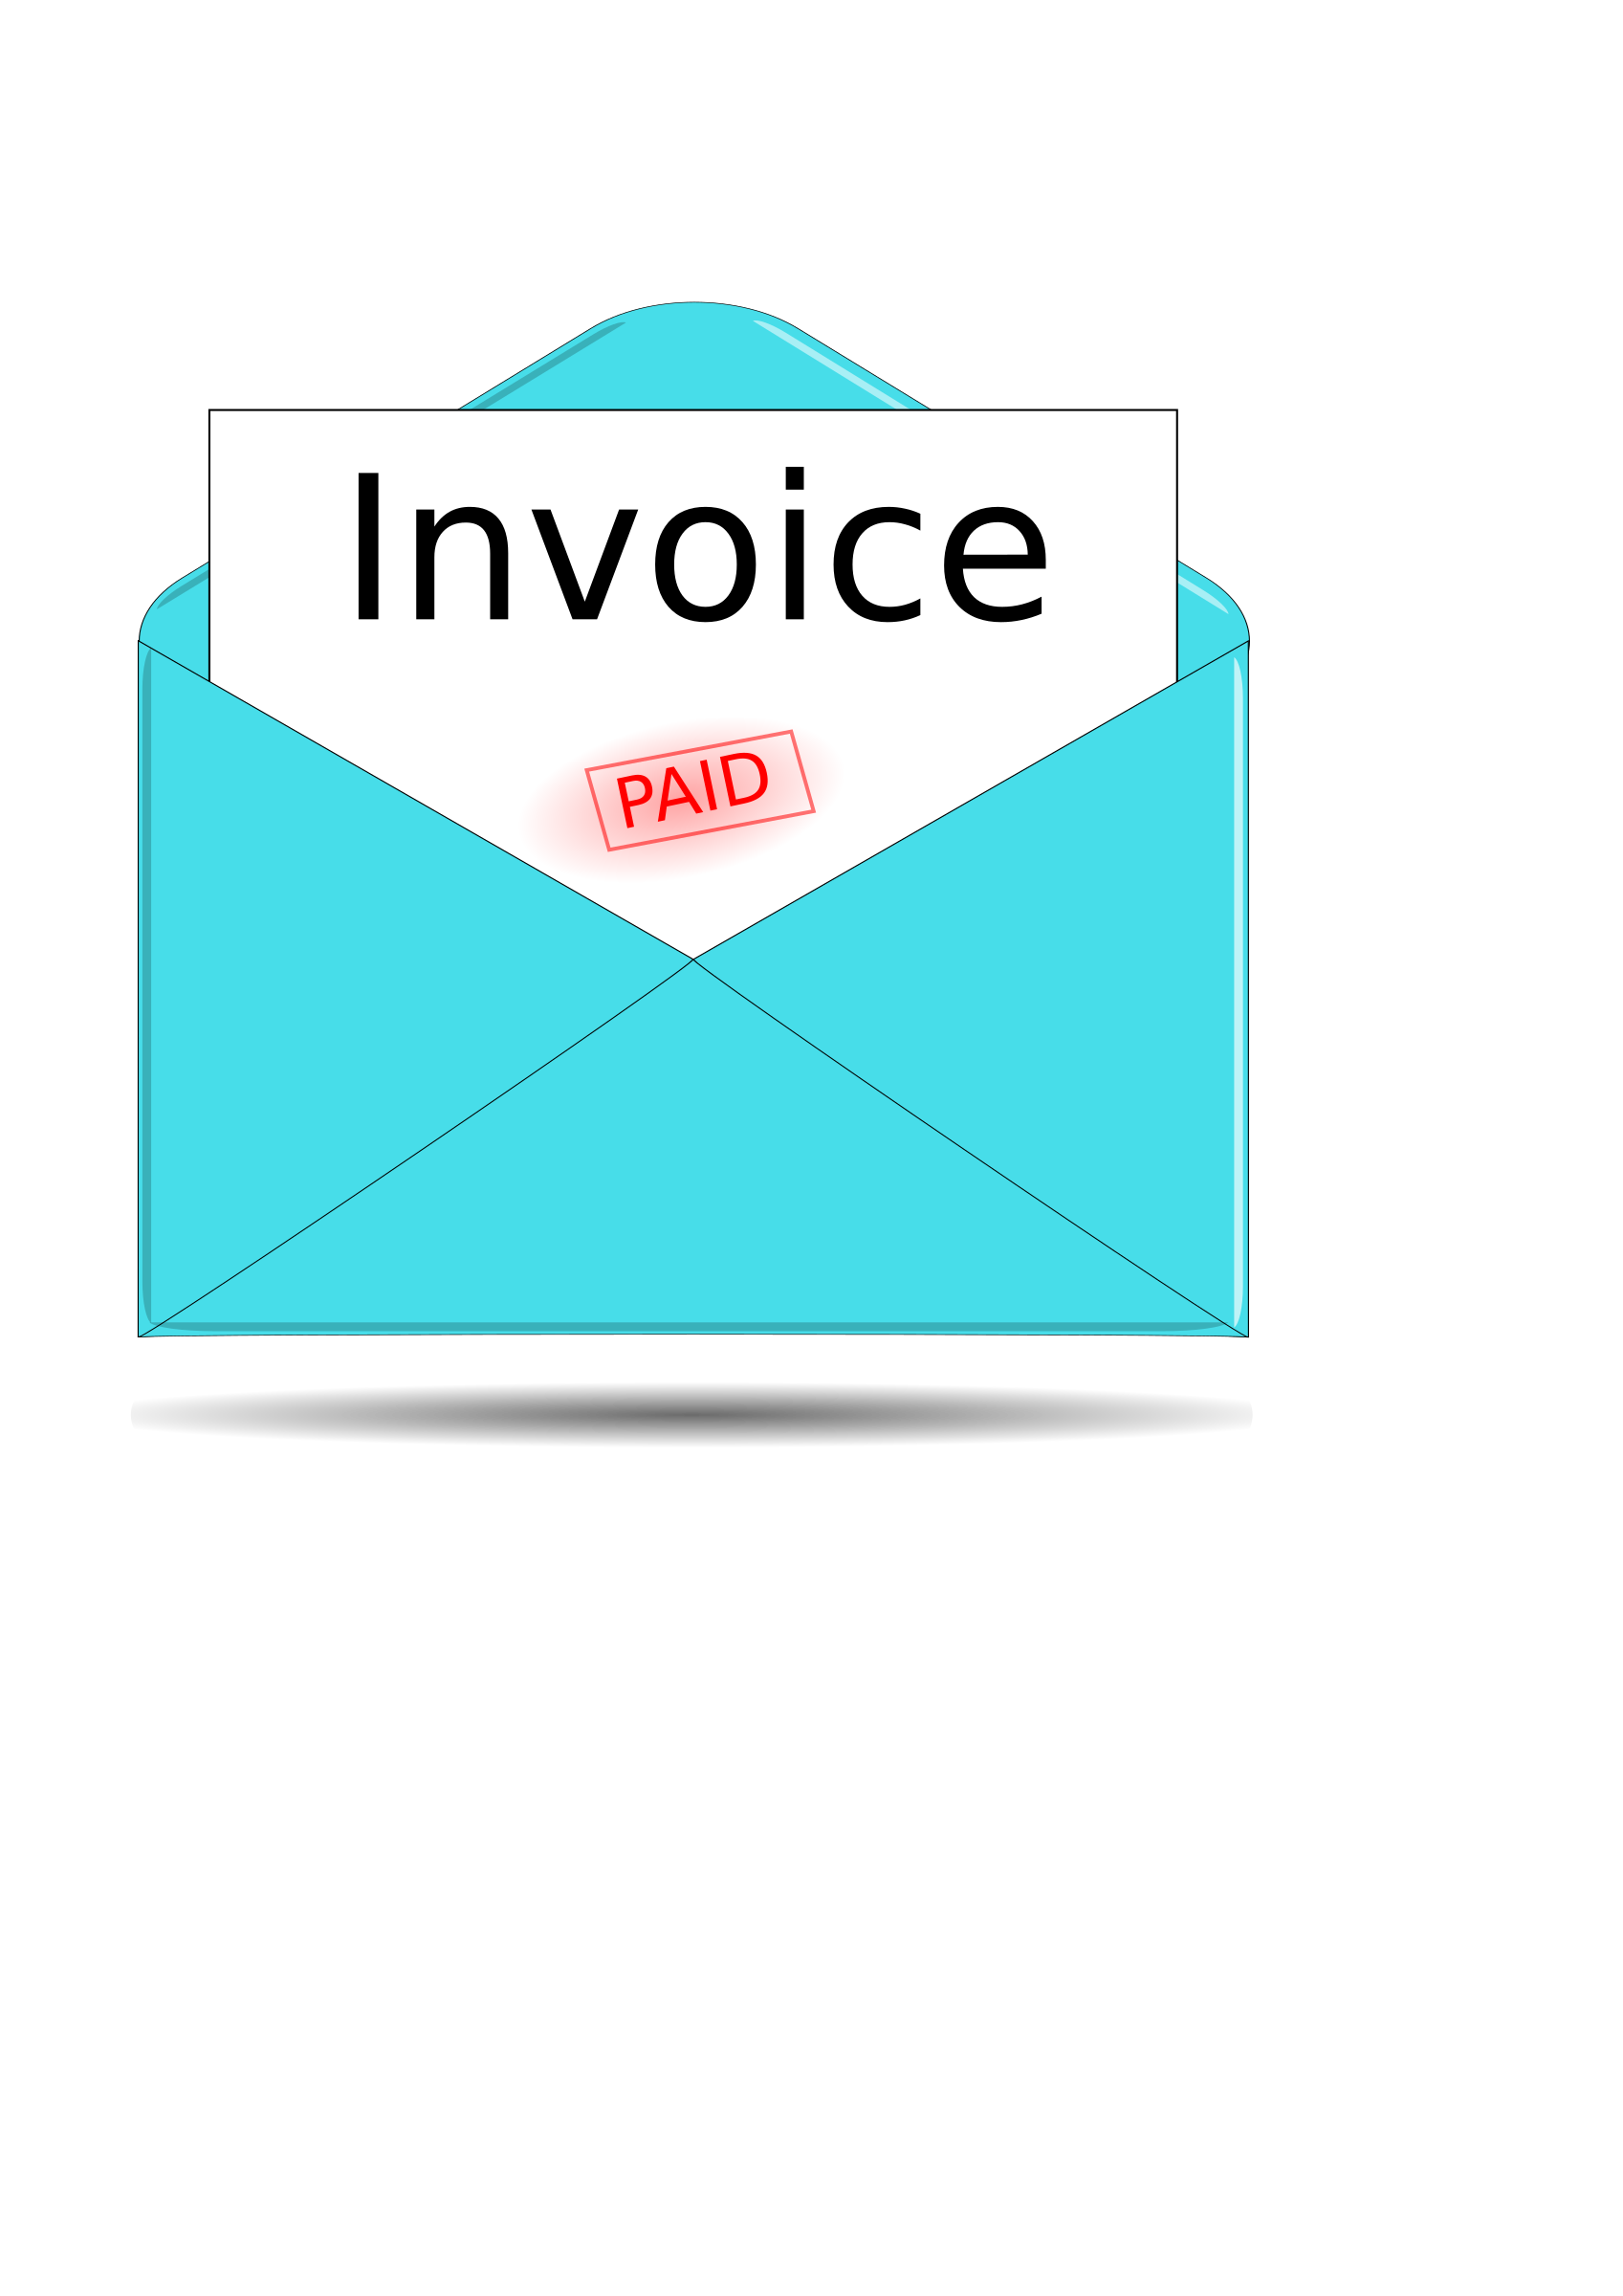 Email clipart money envelope. Invoice big image png